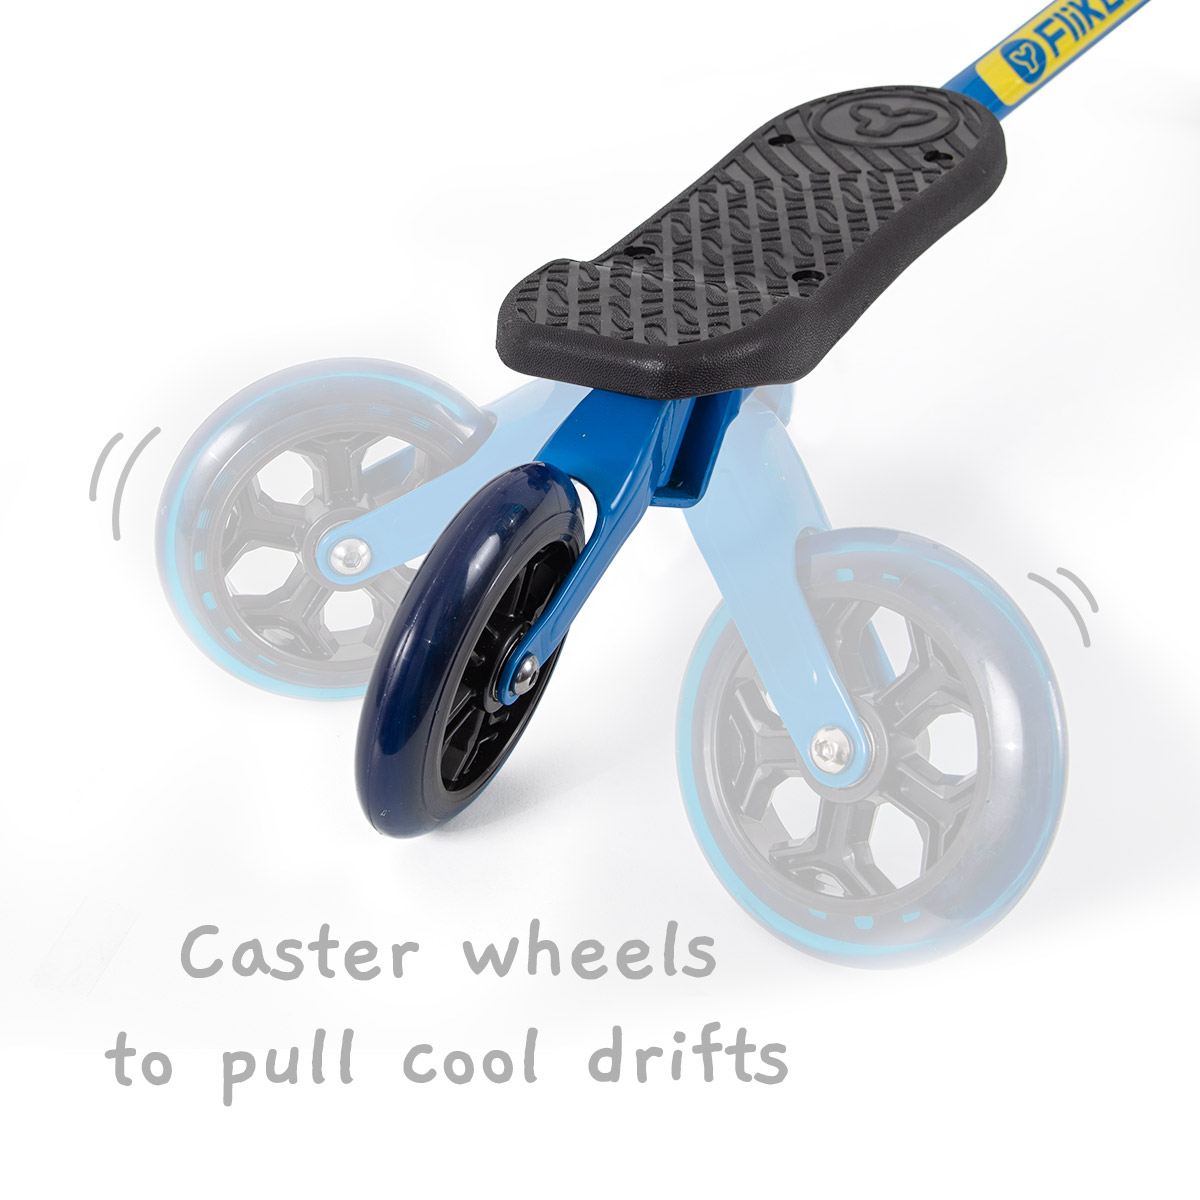 Durable PU caster wheels